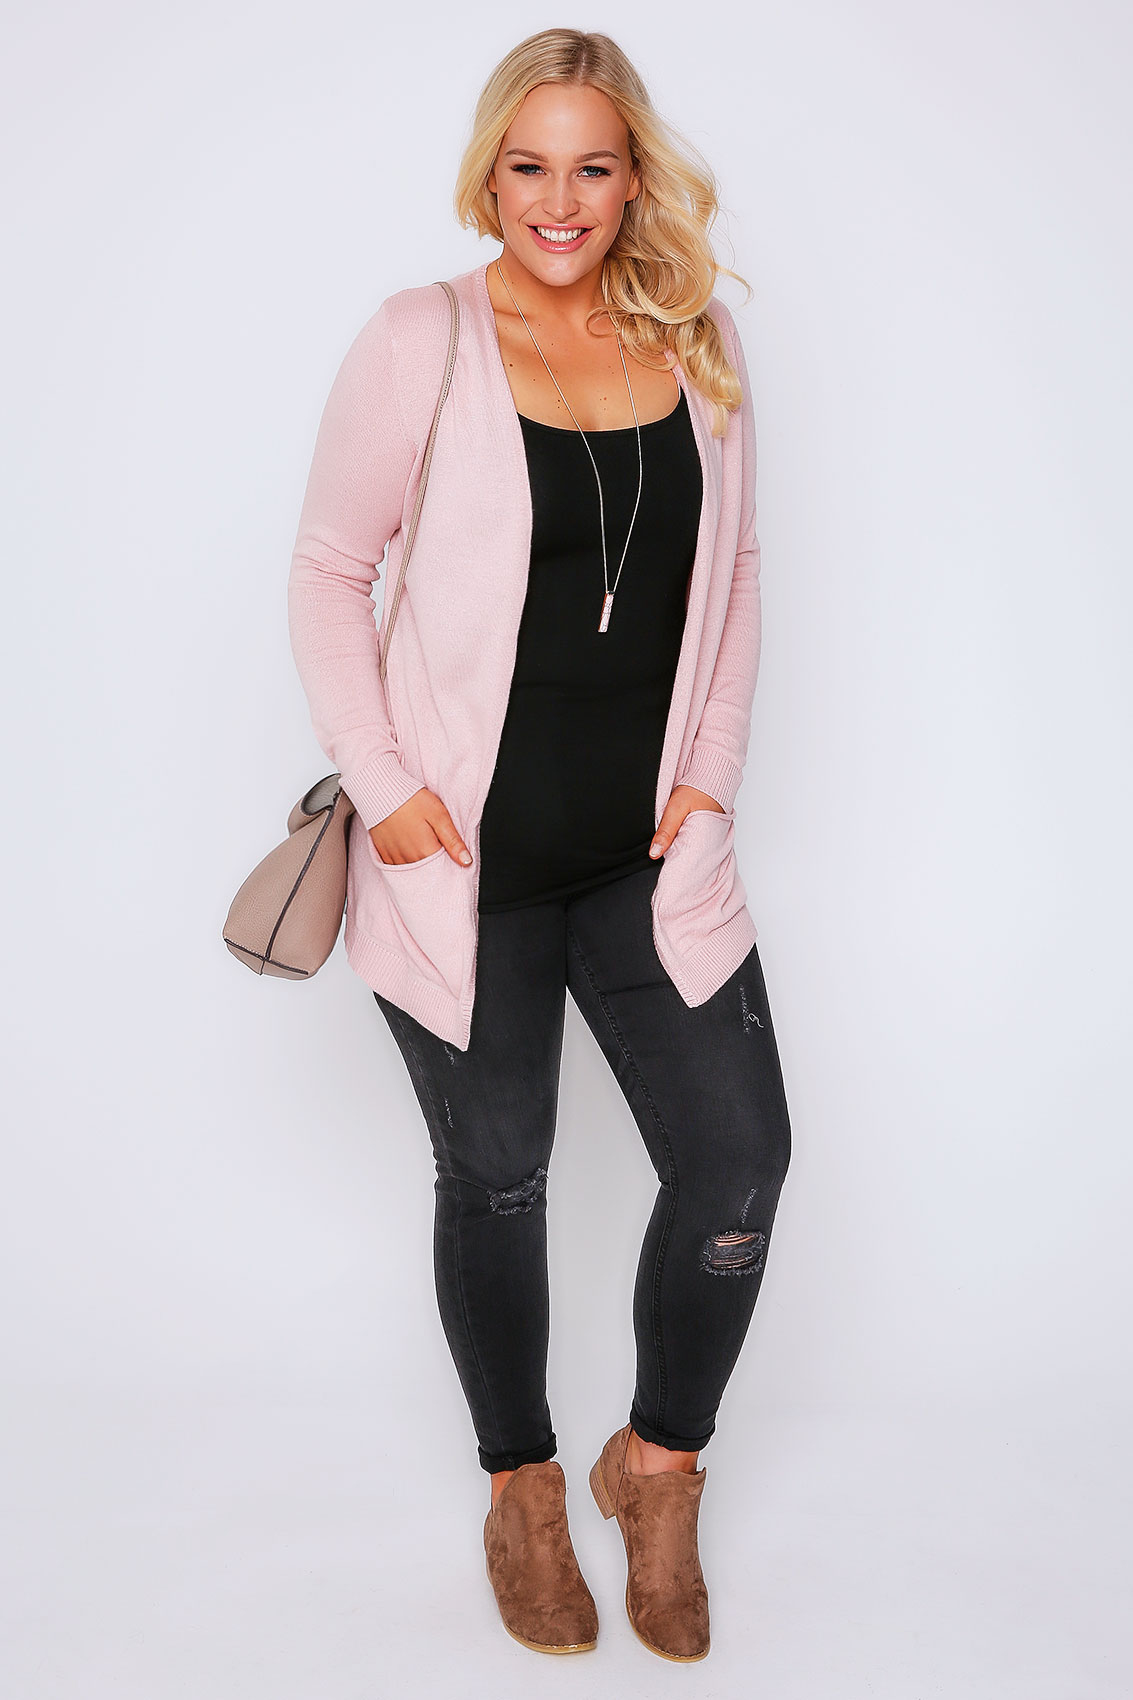 Soft, knitted cardigan in a beautiful pink shade with gold-plated buttons. Round neck and long exeezipcoolgetsiu9tq.cfs: 5.